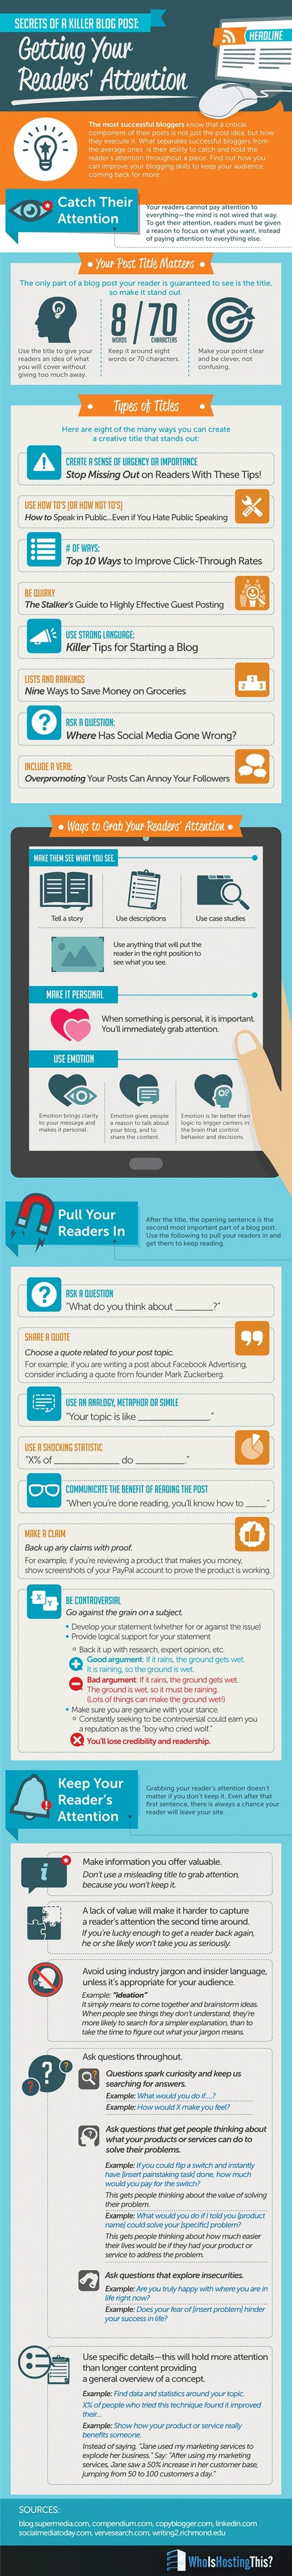 Secrets of a Killer Blog Post  #Infographic | Personal Branding Using Scoopit | Scoop.it